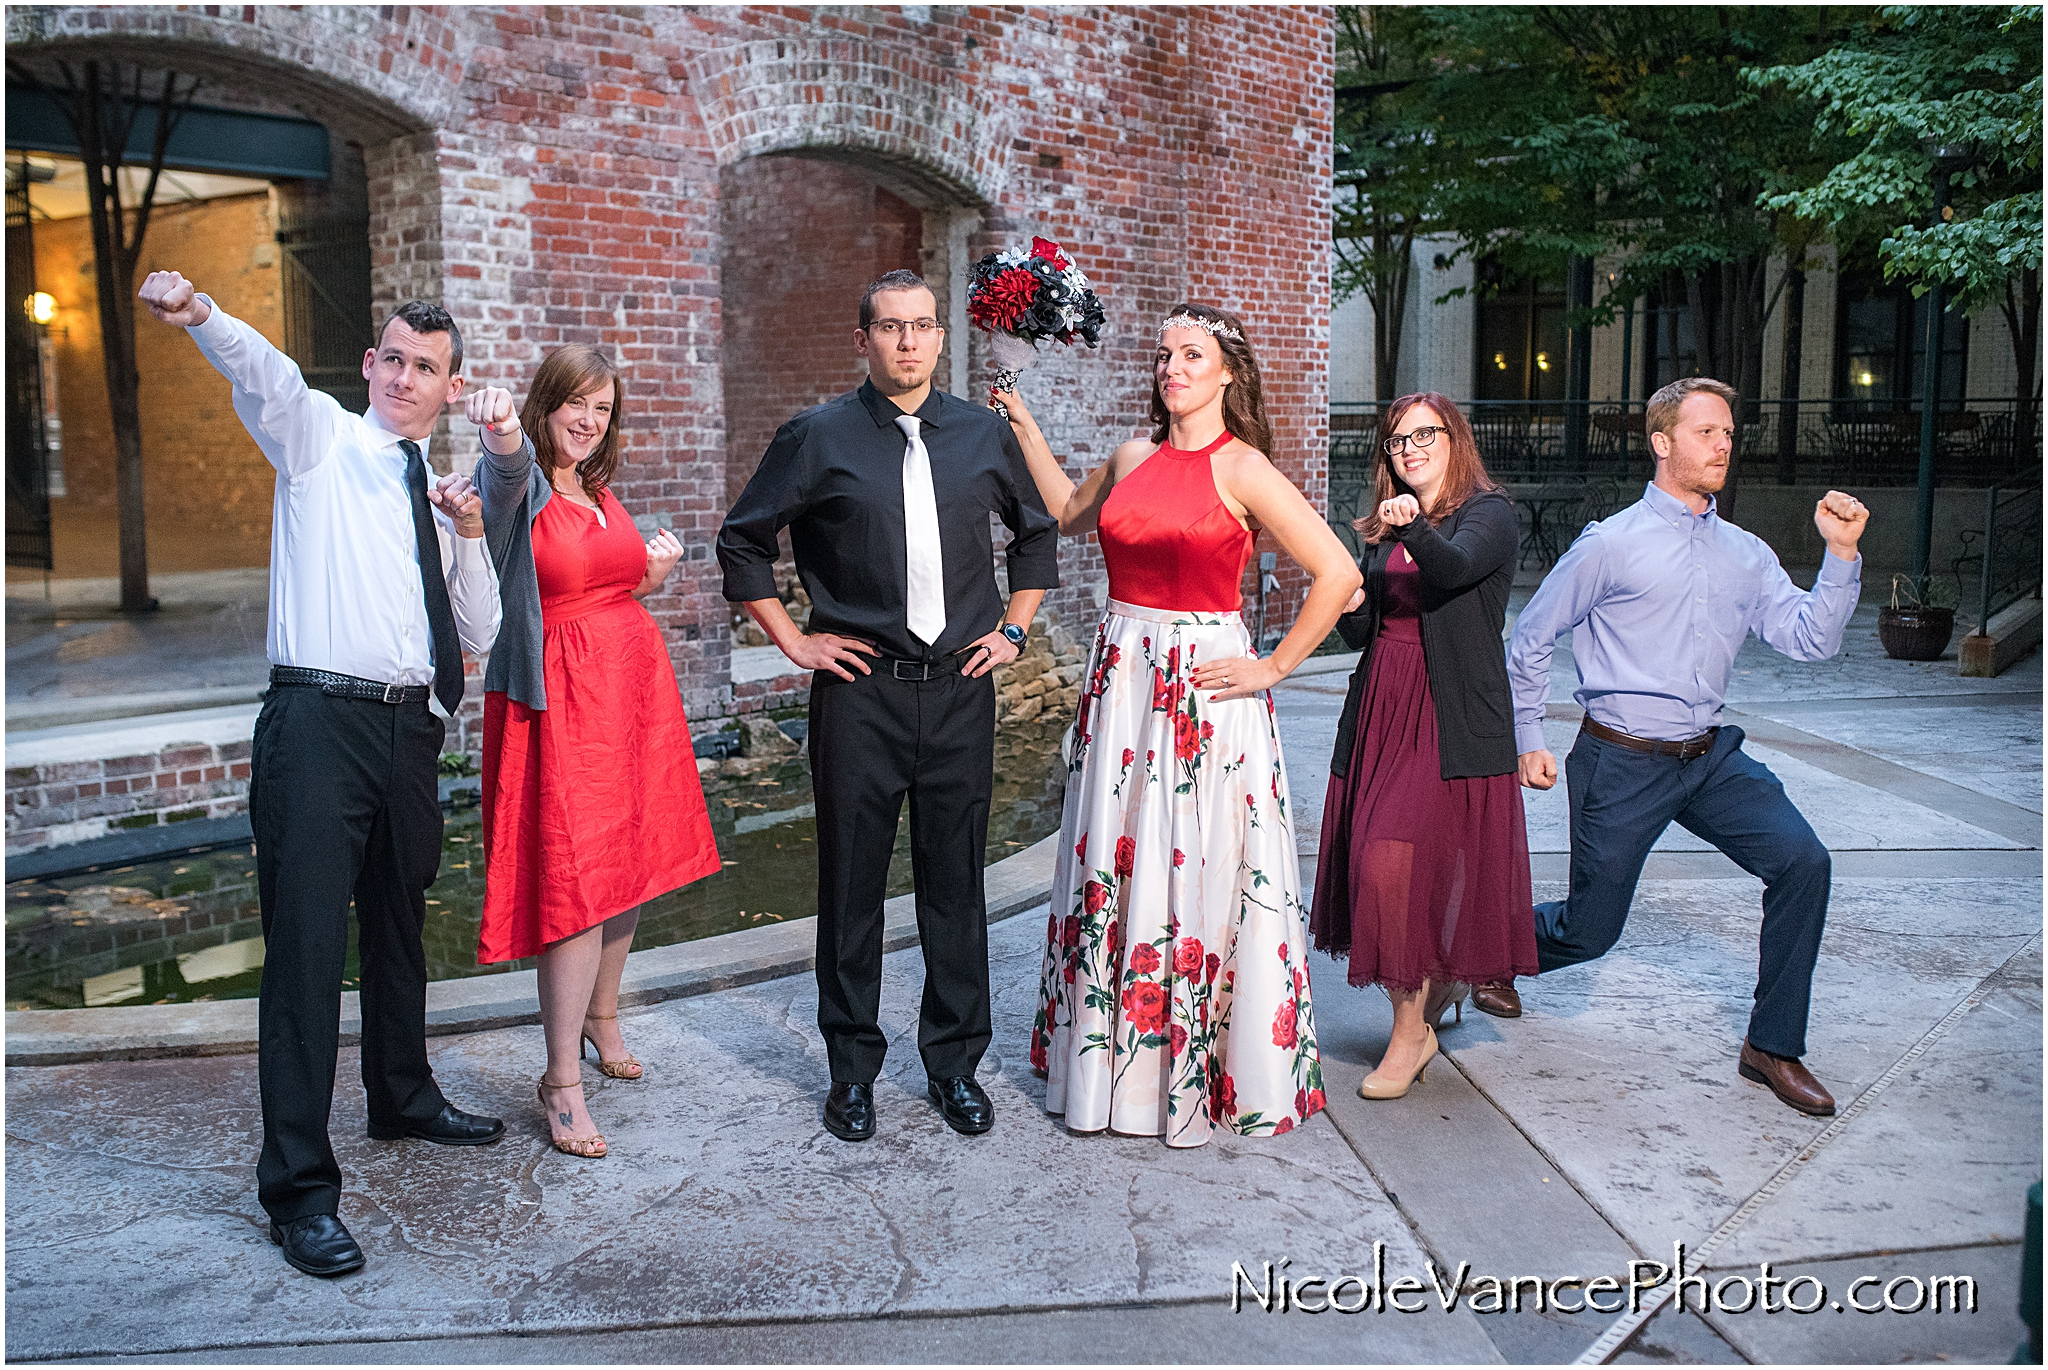 The friends pose as superheroes after a Micro-Wedding at Book Binders in Richmond VA.